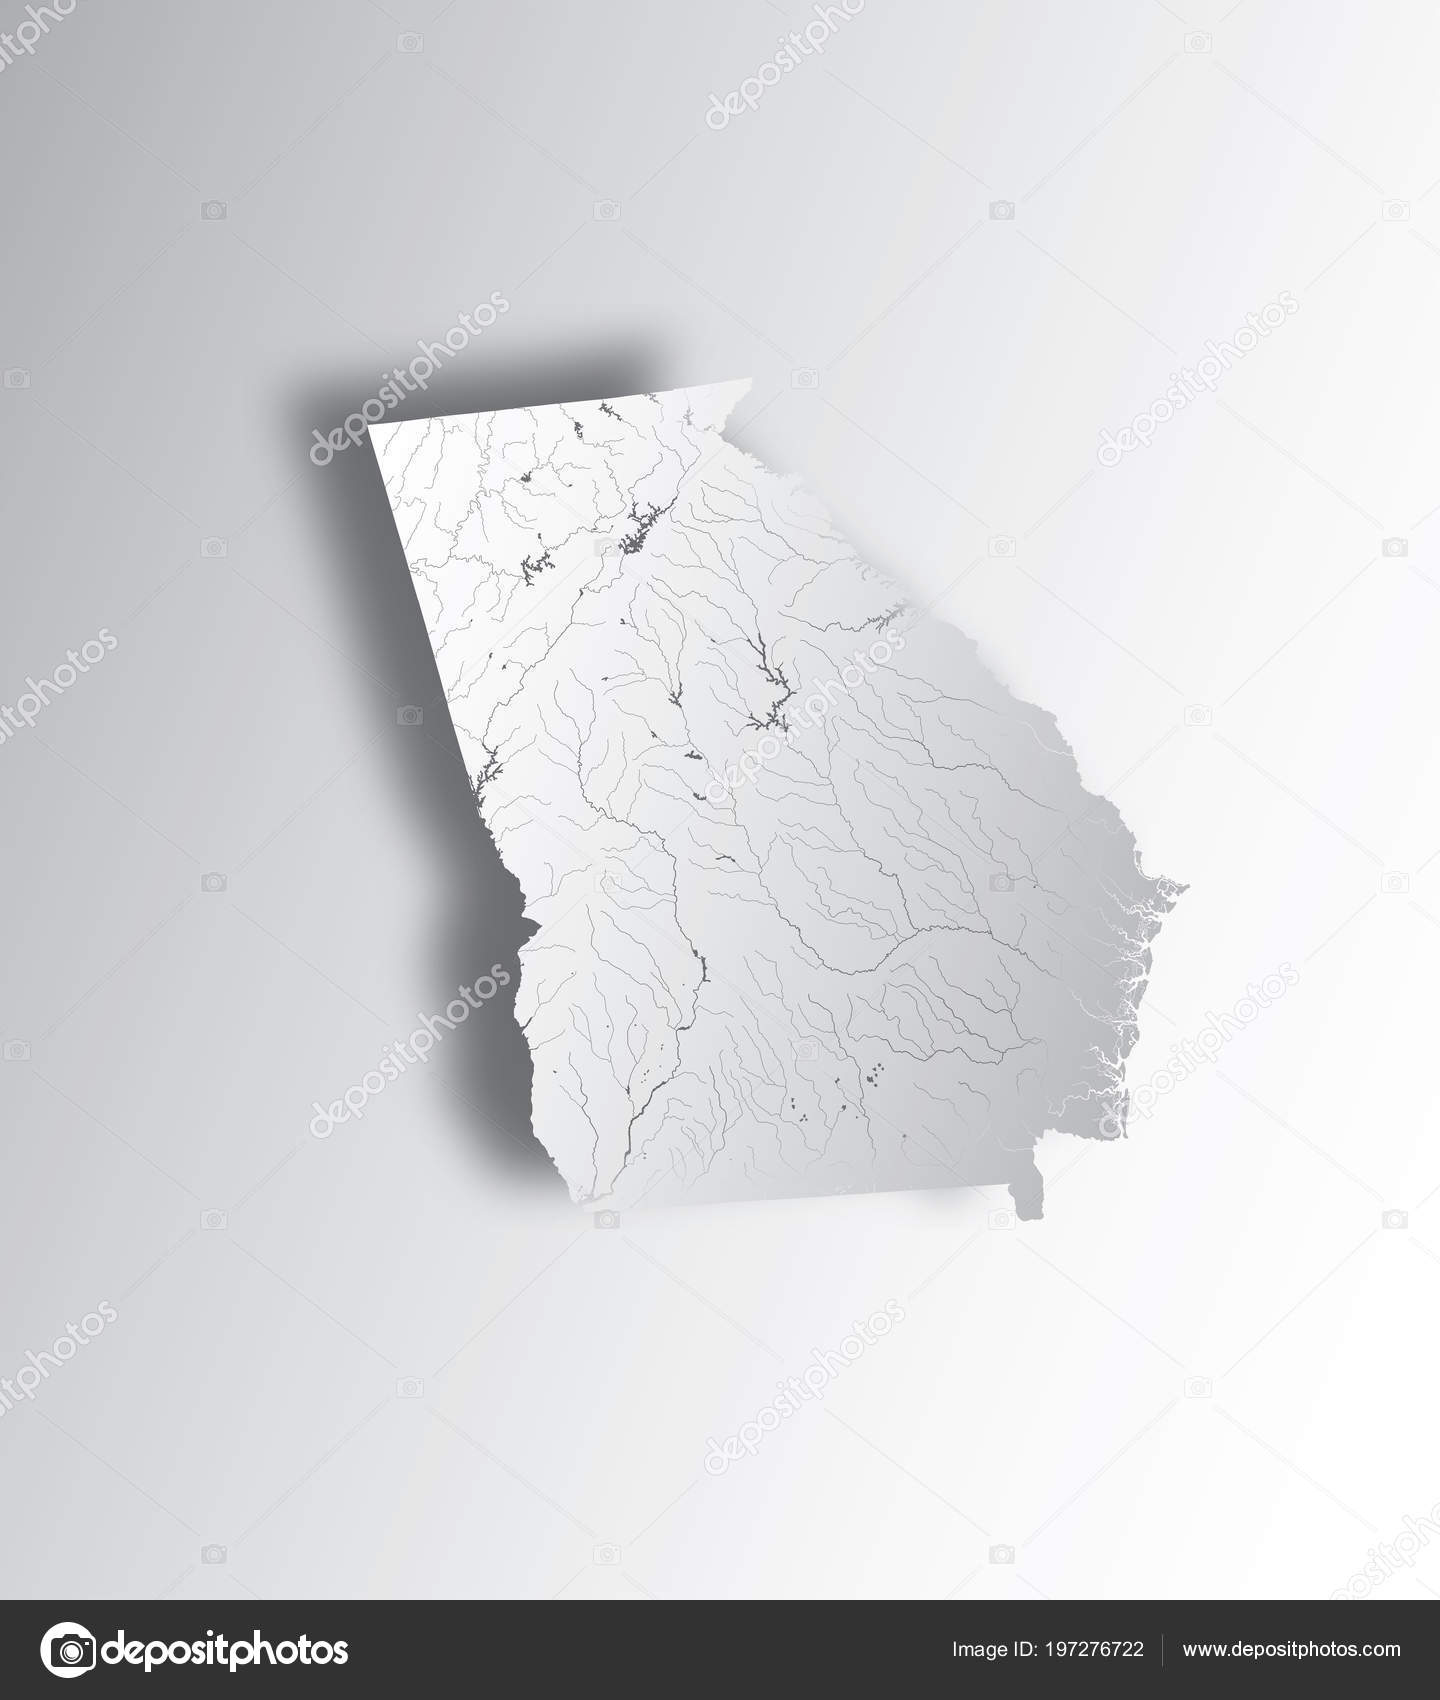 My State Map.States Map Georgia State Paper Cut Effect Hand Made Rivers Stock